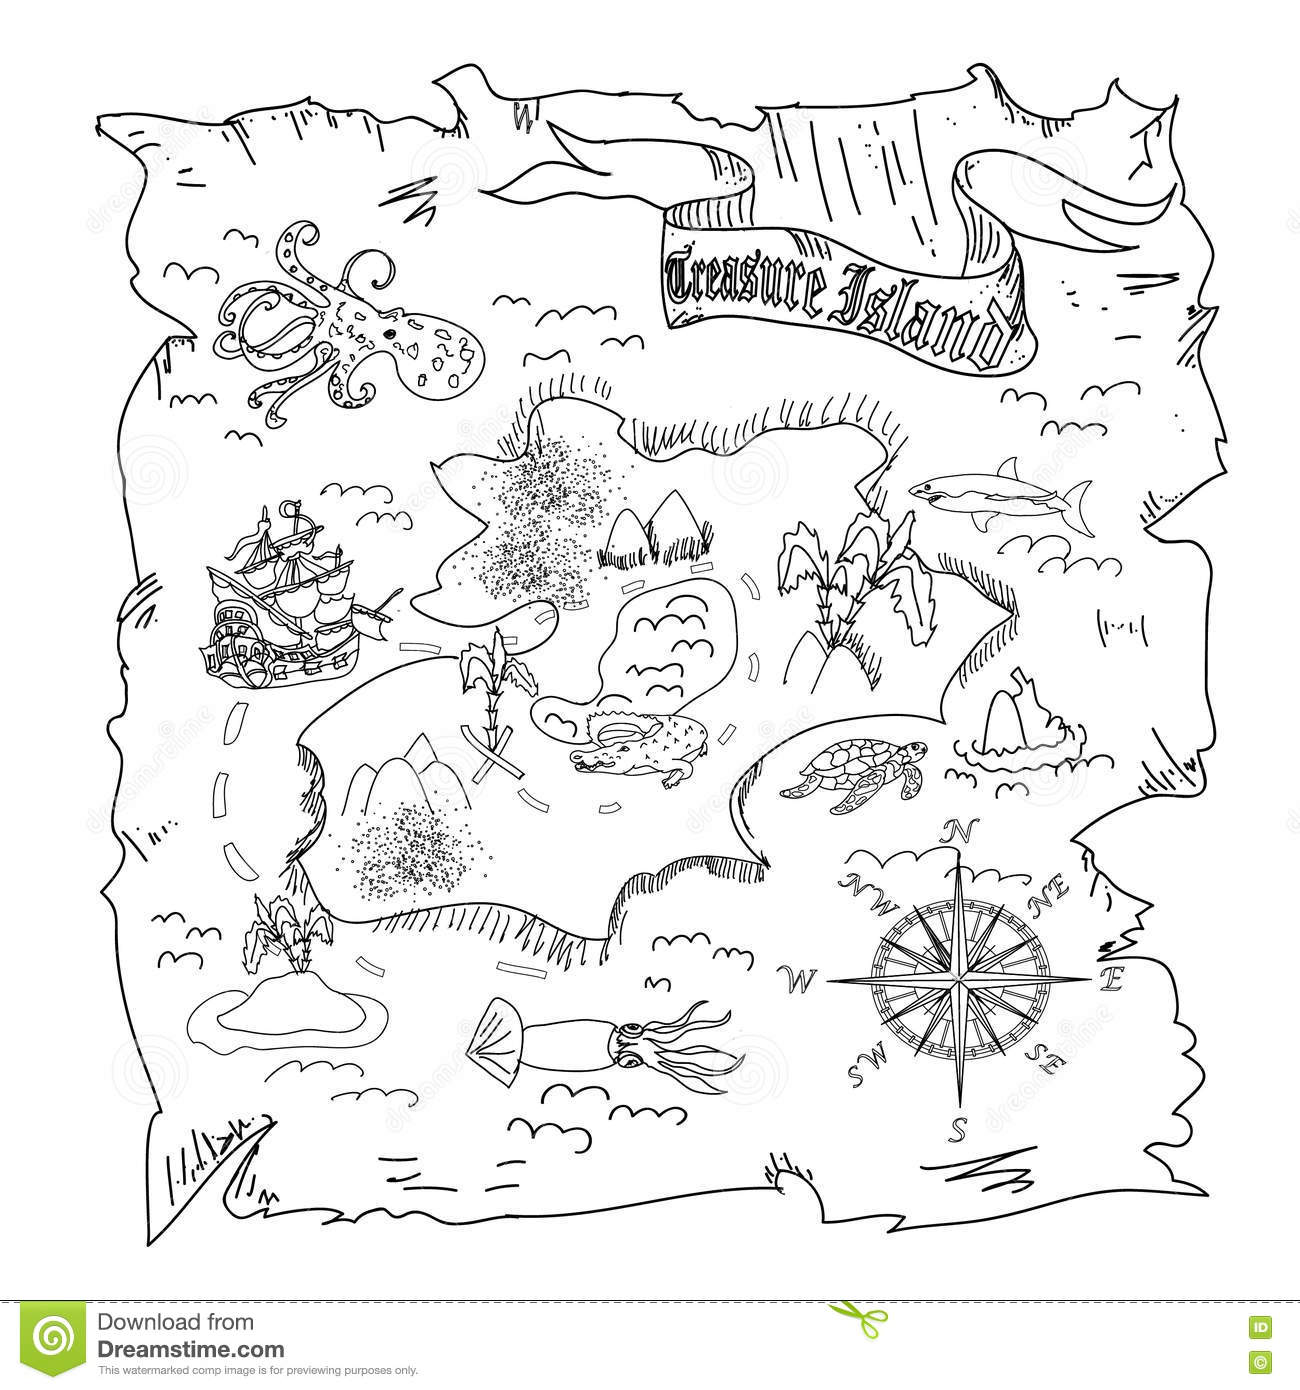 treasure map coloring pages - treasure island map kids coloring page stock illustration